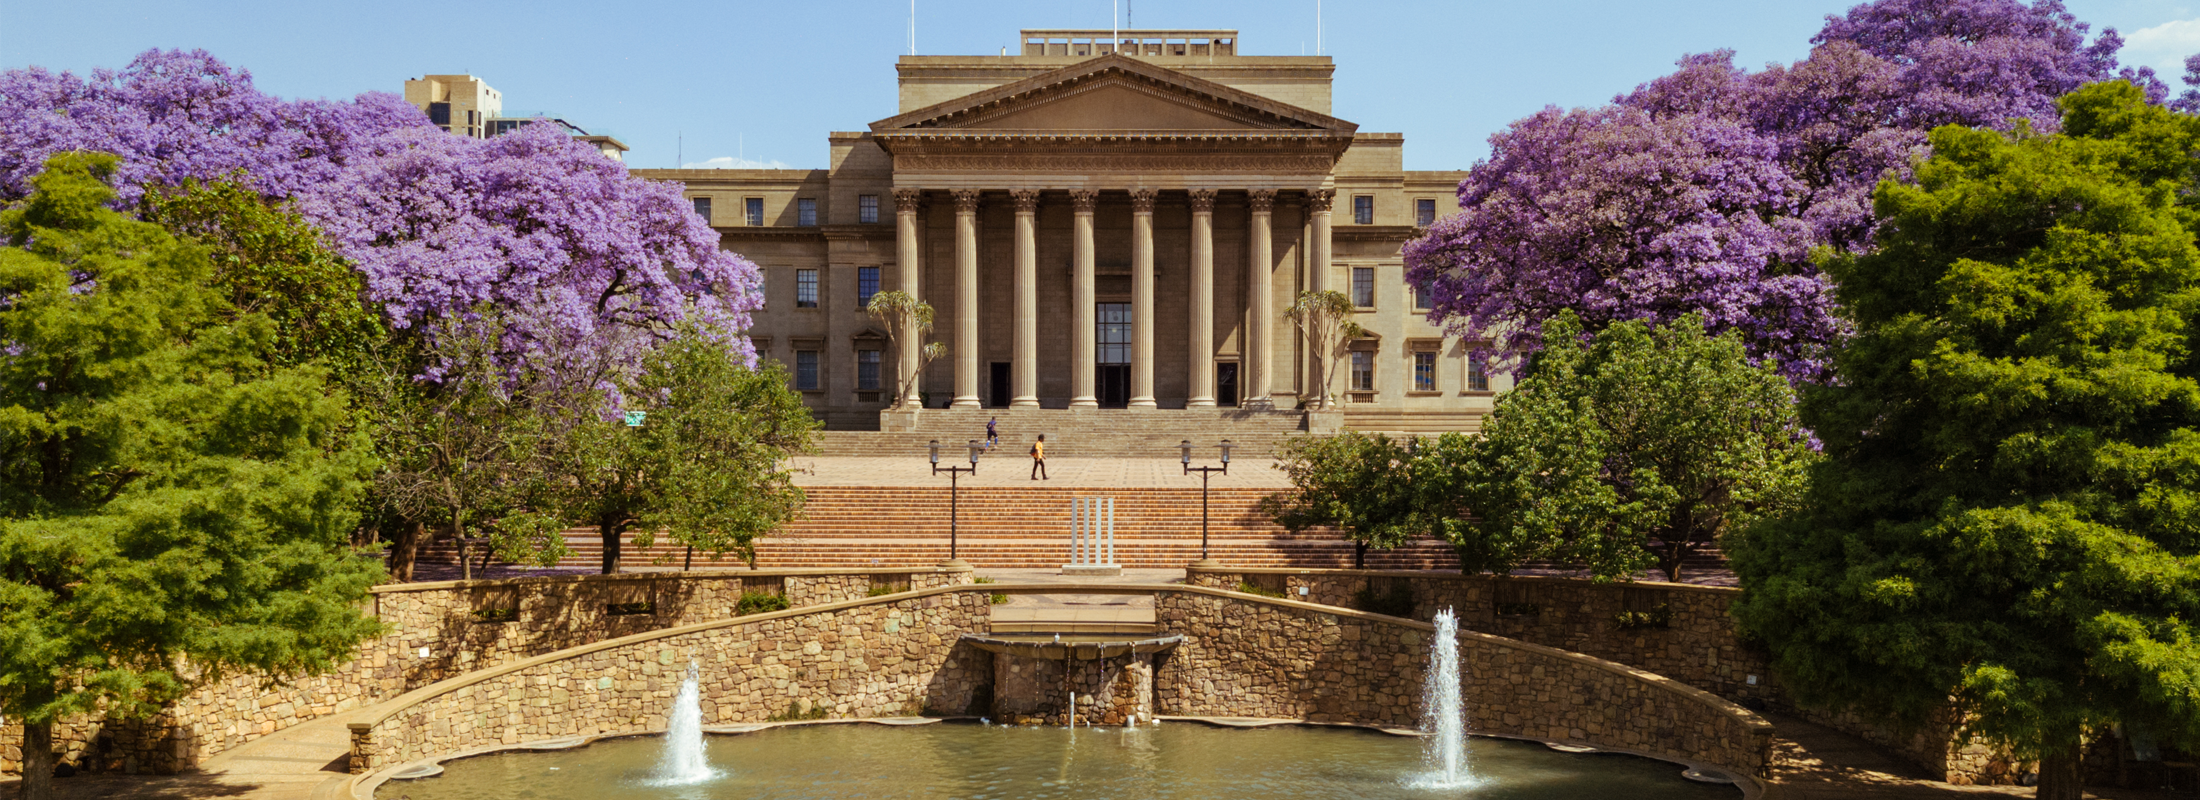 how to apply for Wits 2021, University of Witwatersrand